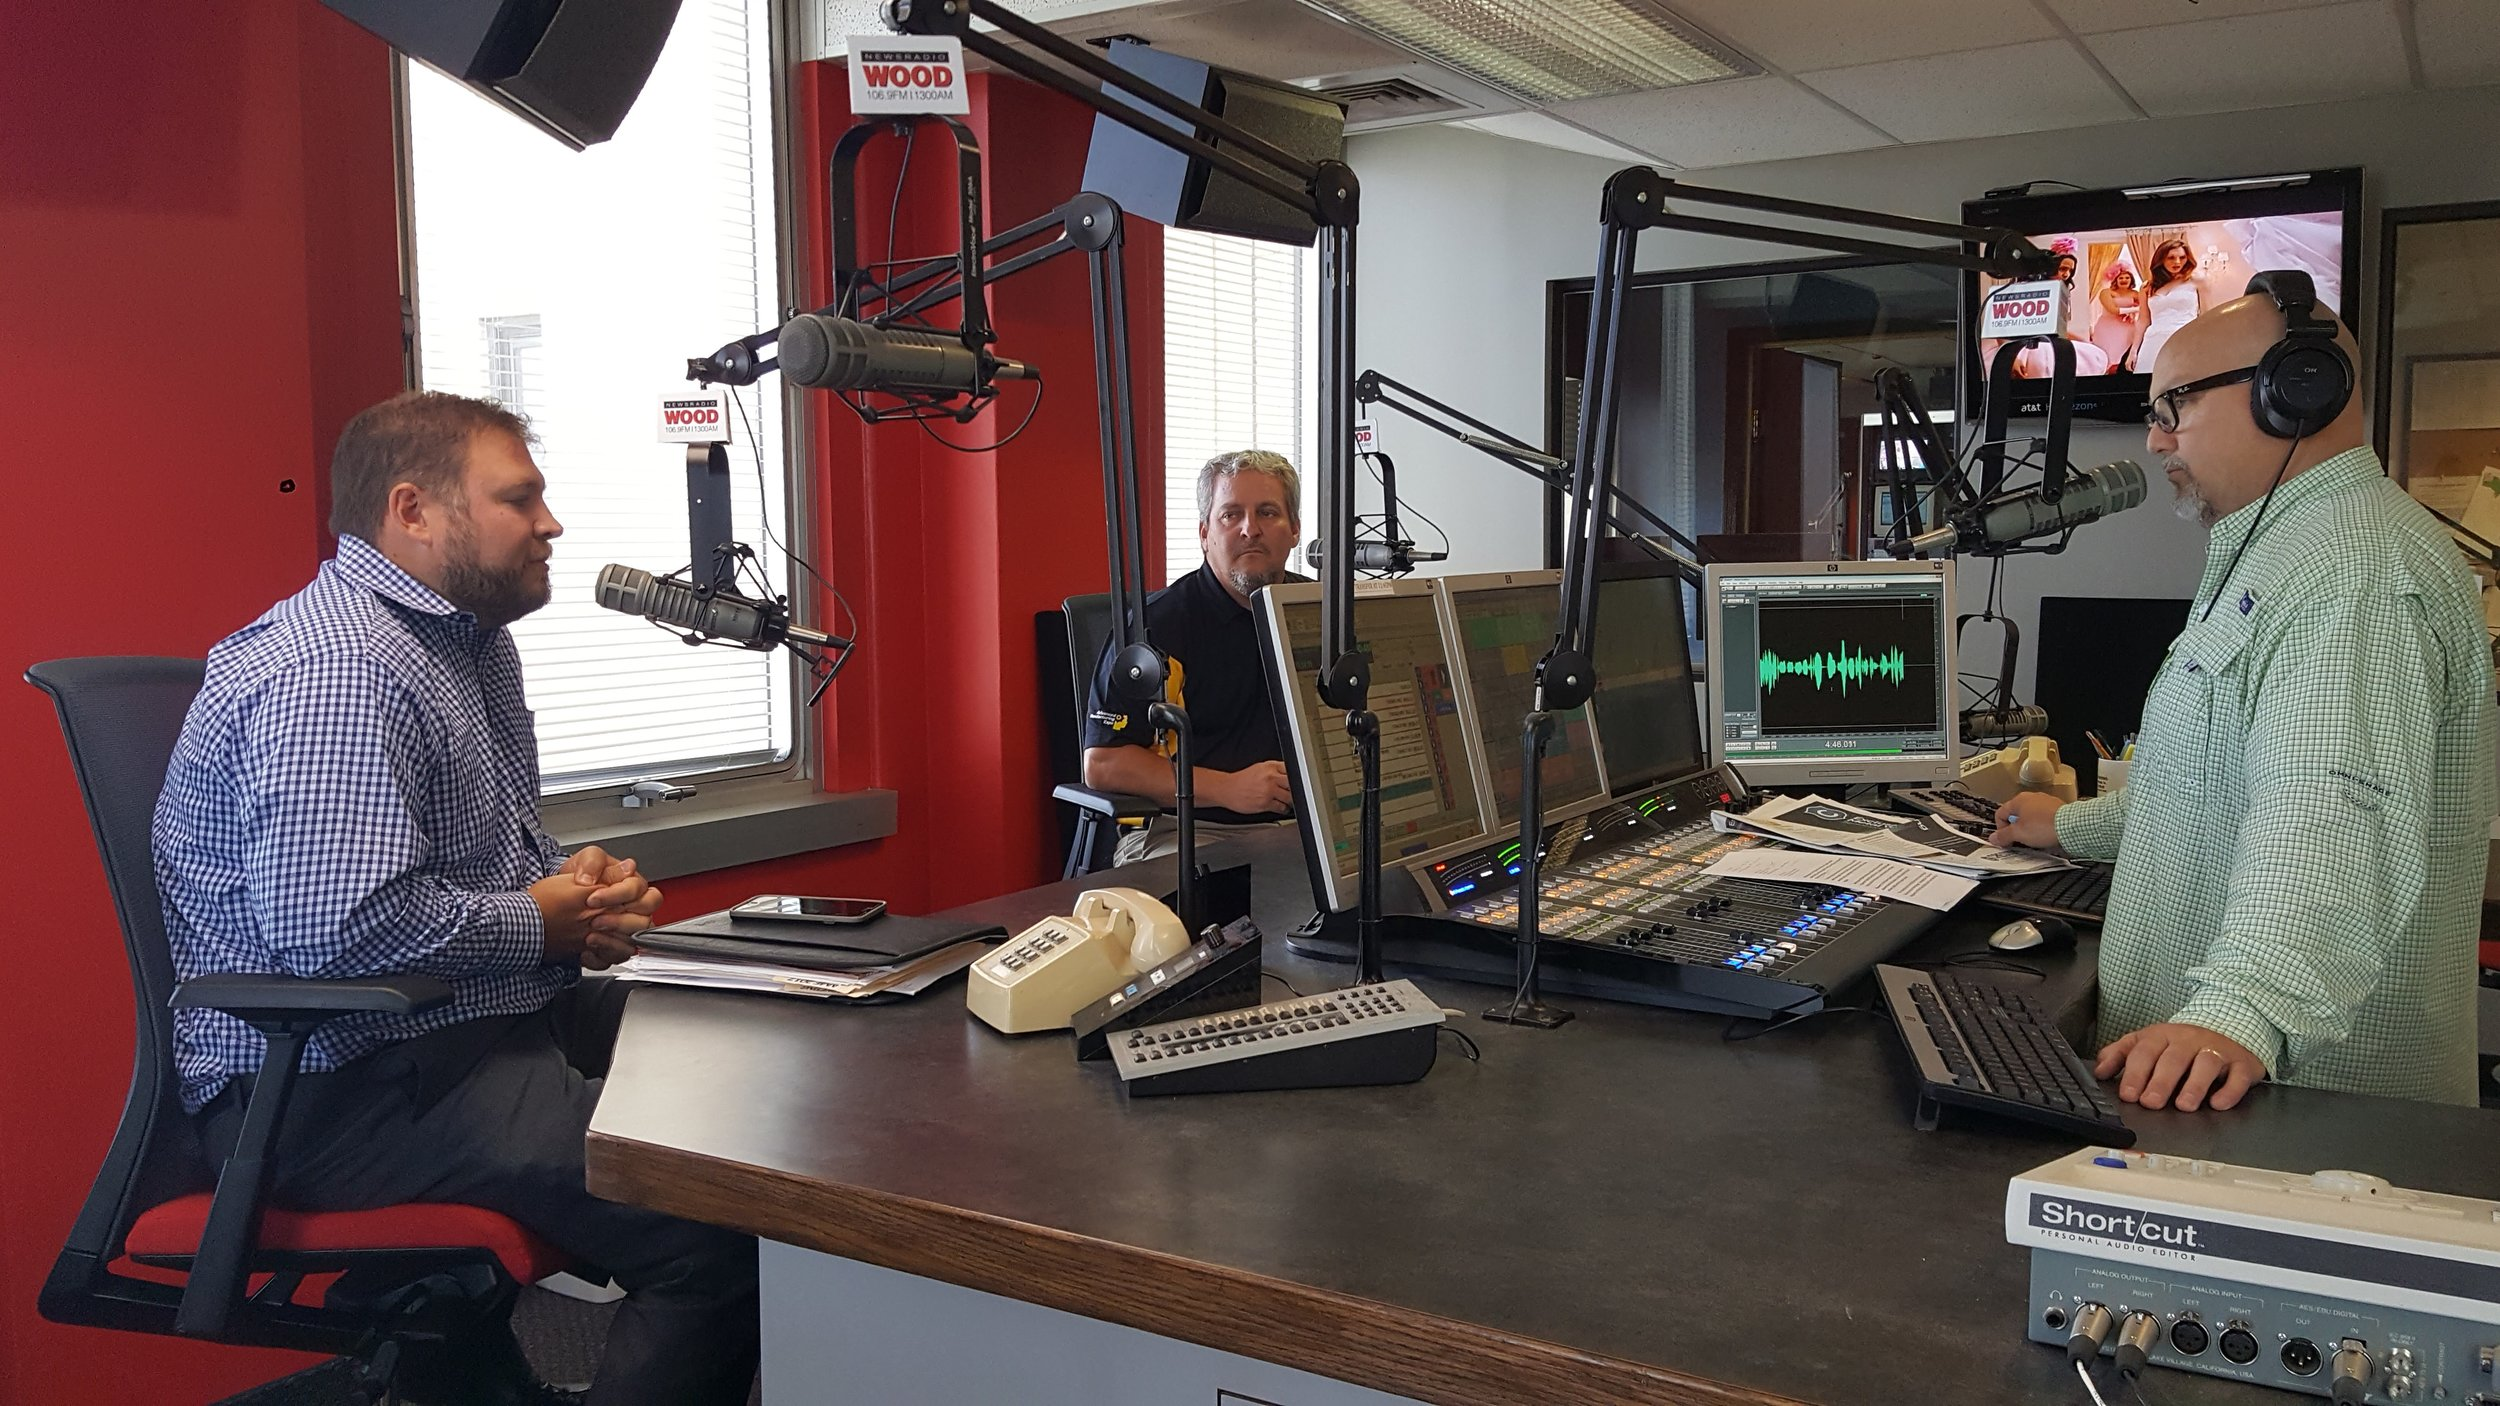 Paul Hendricks (left) and Mark Ermatinger (middle) on air with Steve Kelly (right) on WOOD 1300 AM and 106.9 FM